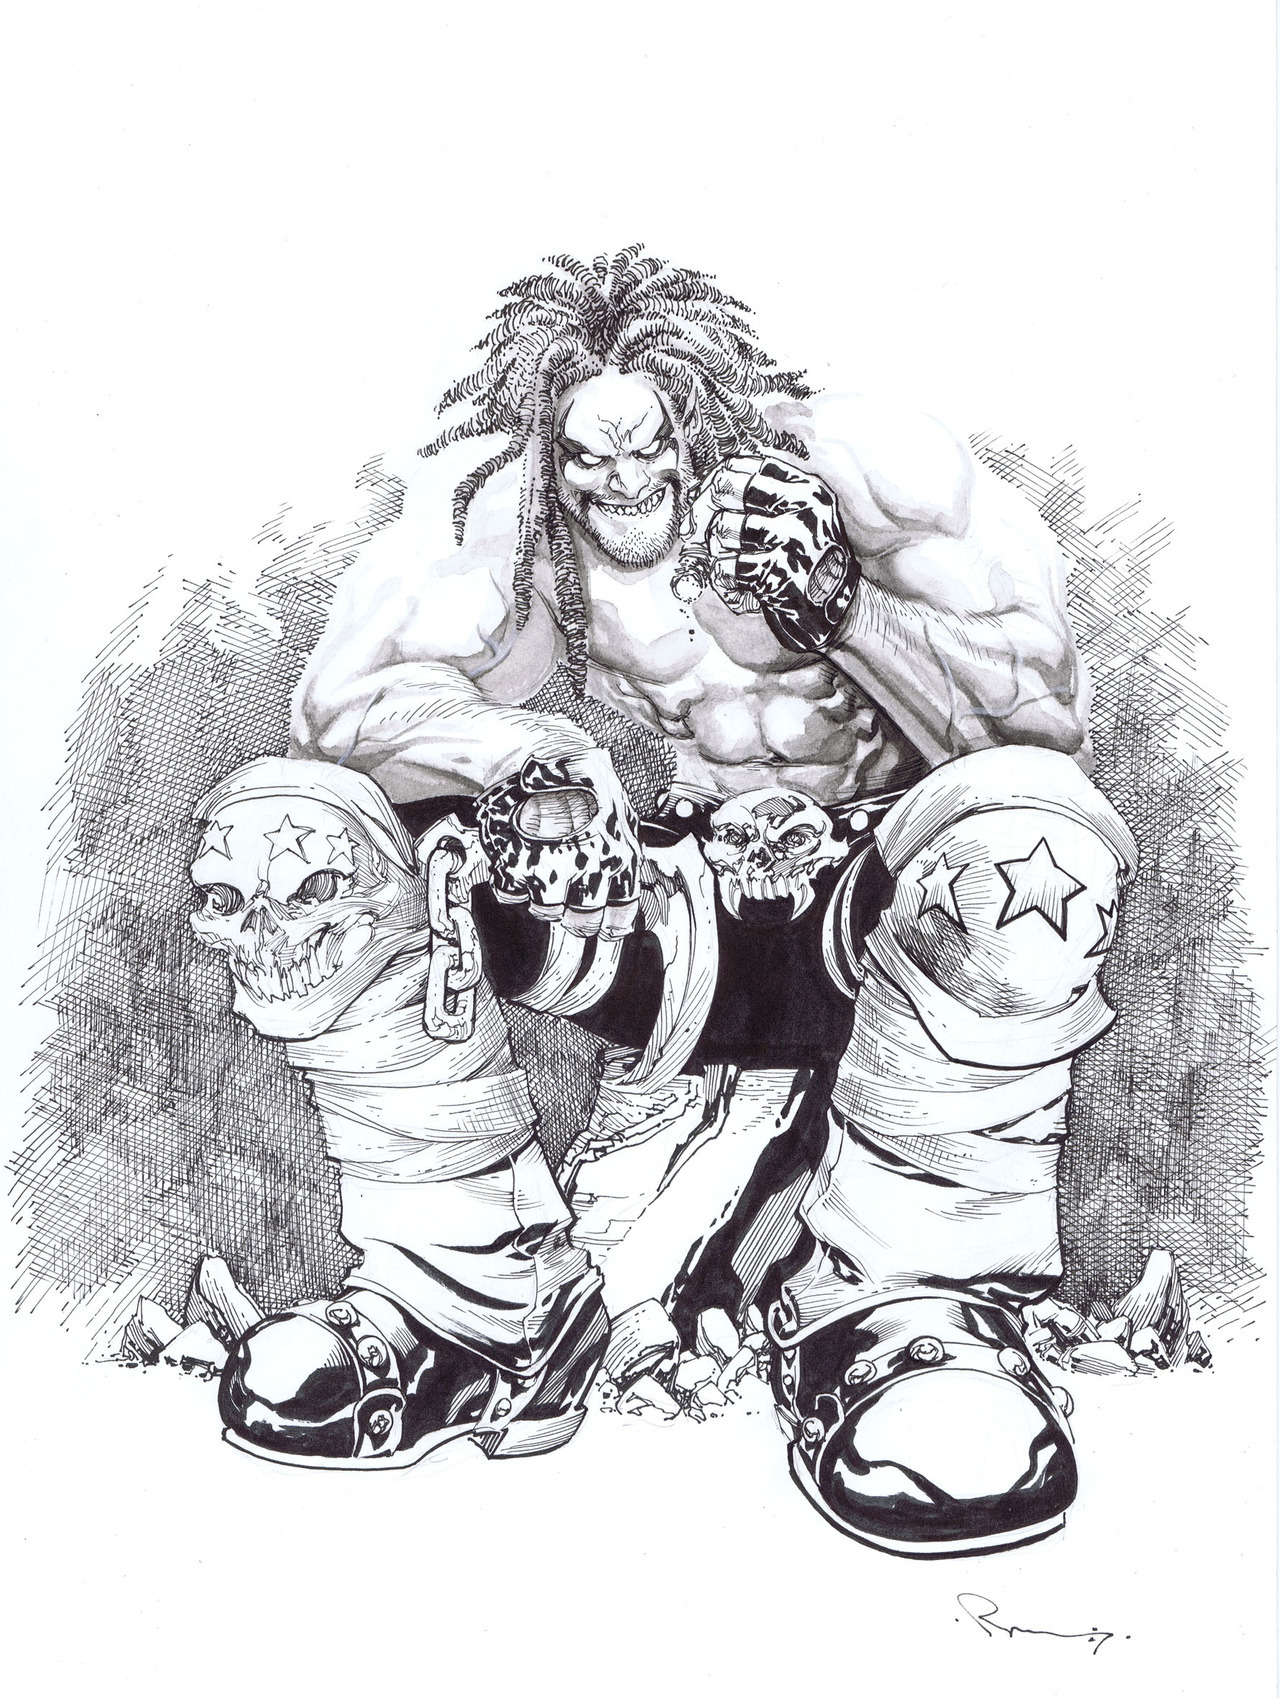 Lobo by Tom Raney